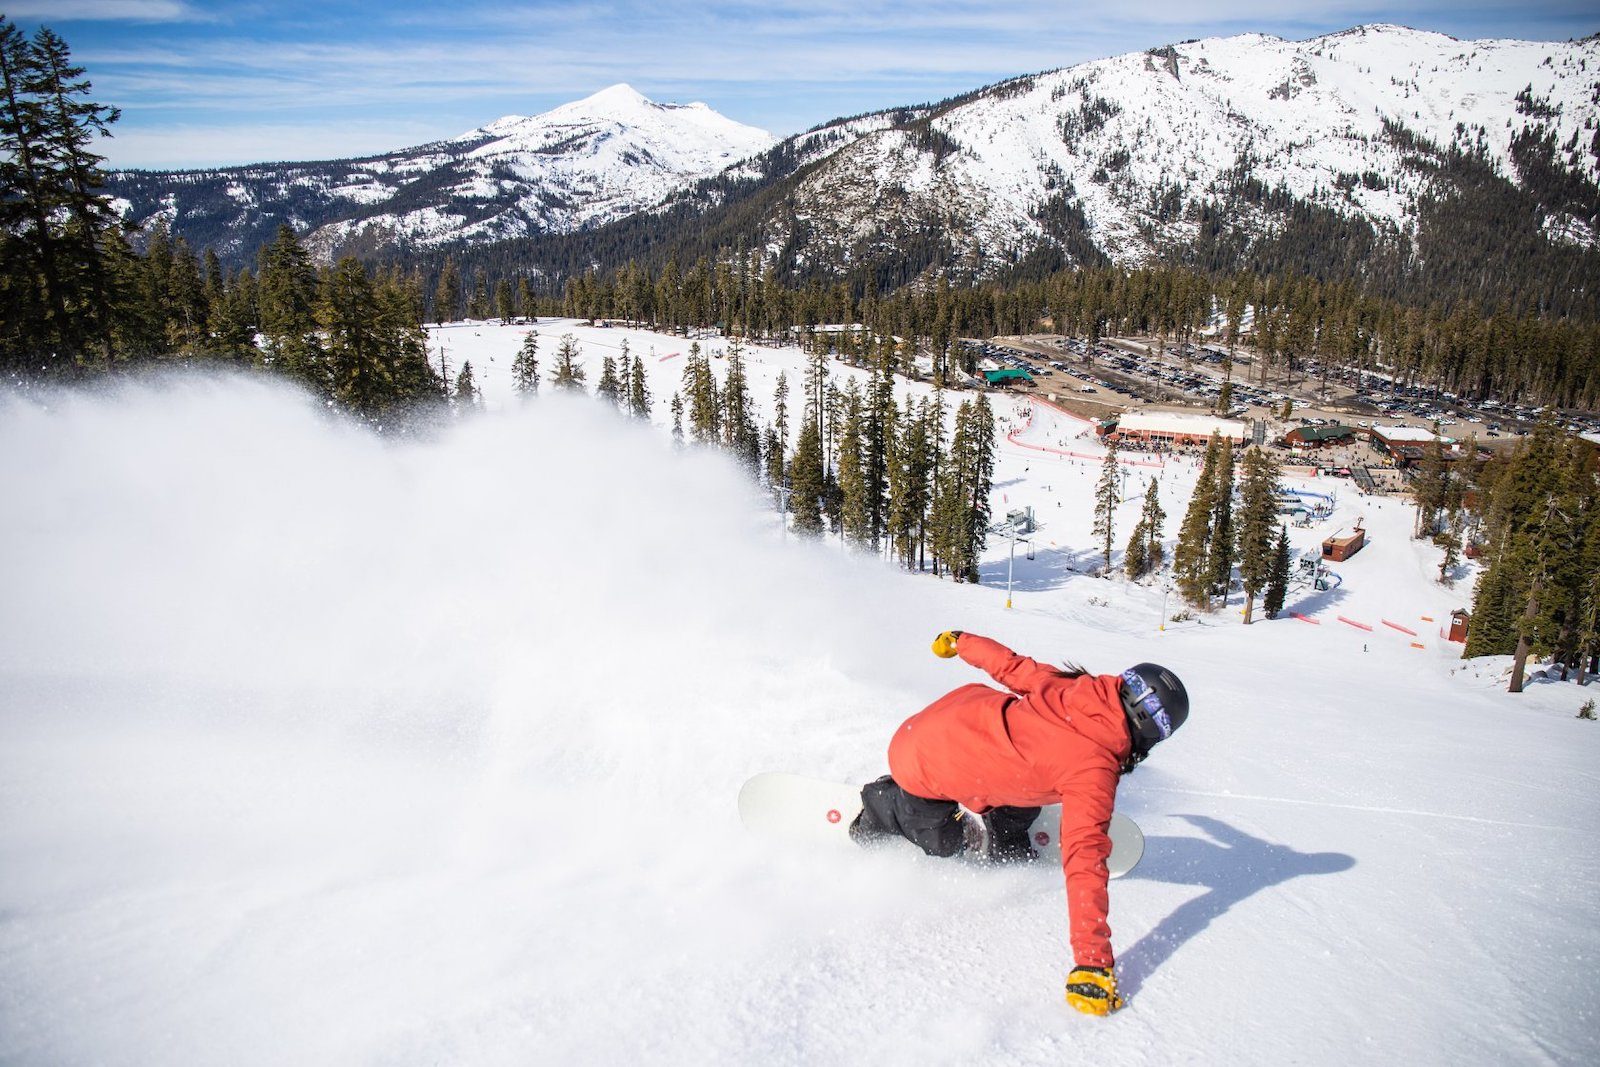 Image of a snowboarder in red going down the slopes at Sierra-at-Tahoe Resort in California